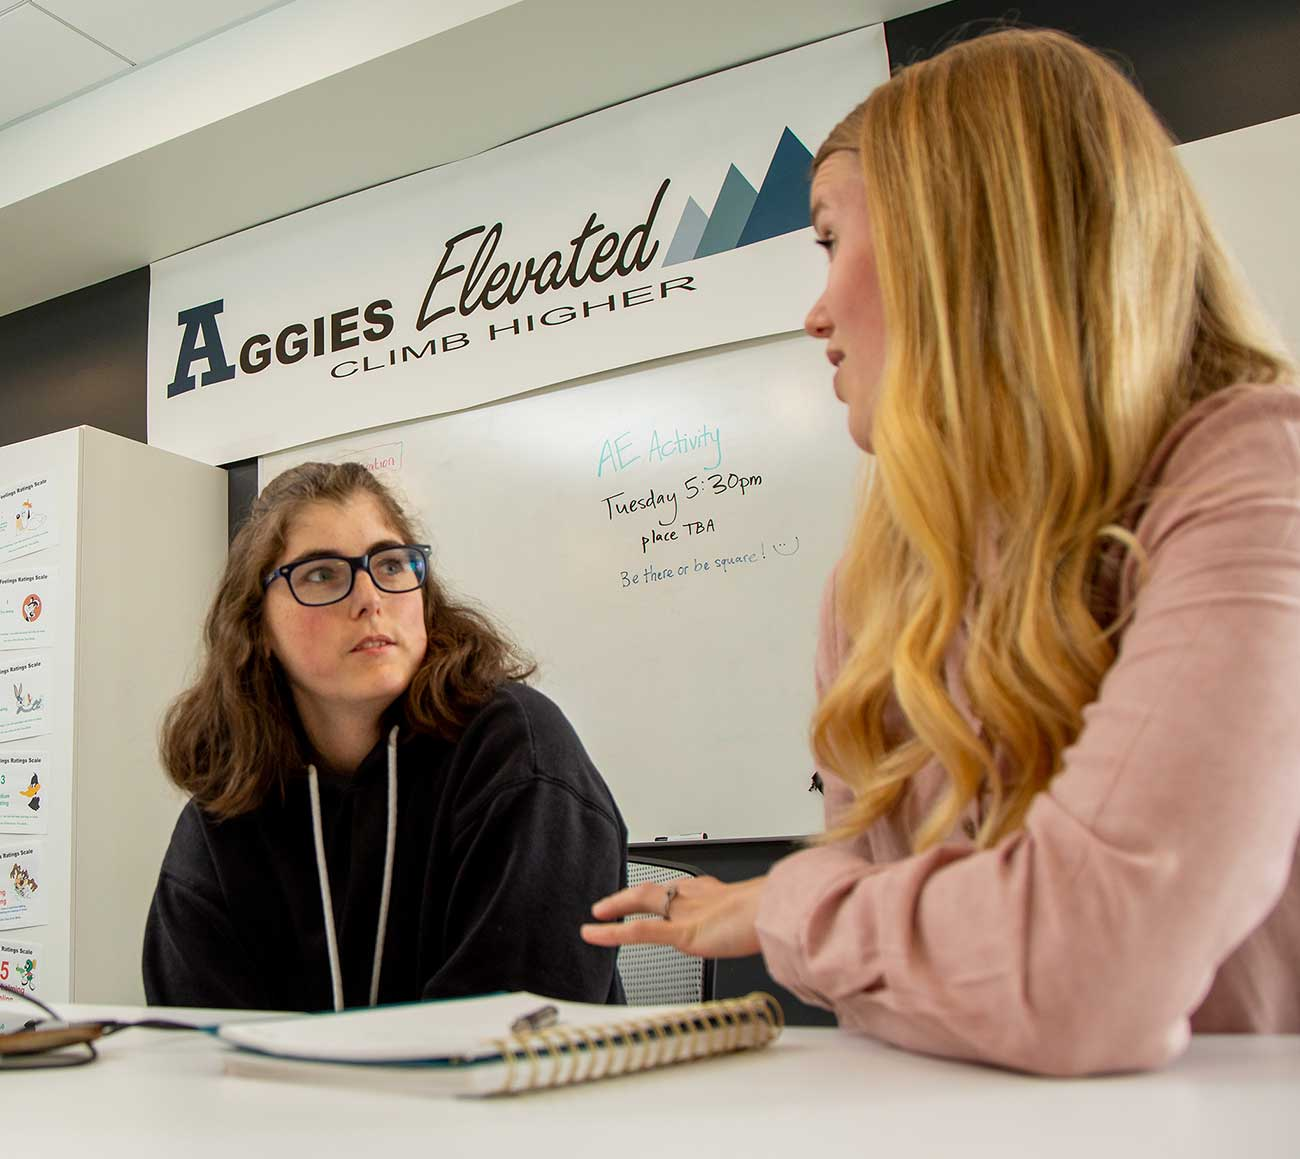 Student and mentor conversing. A spiral bound notebook is on the desk. An Aggies Elevated banner is visible in the background.